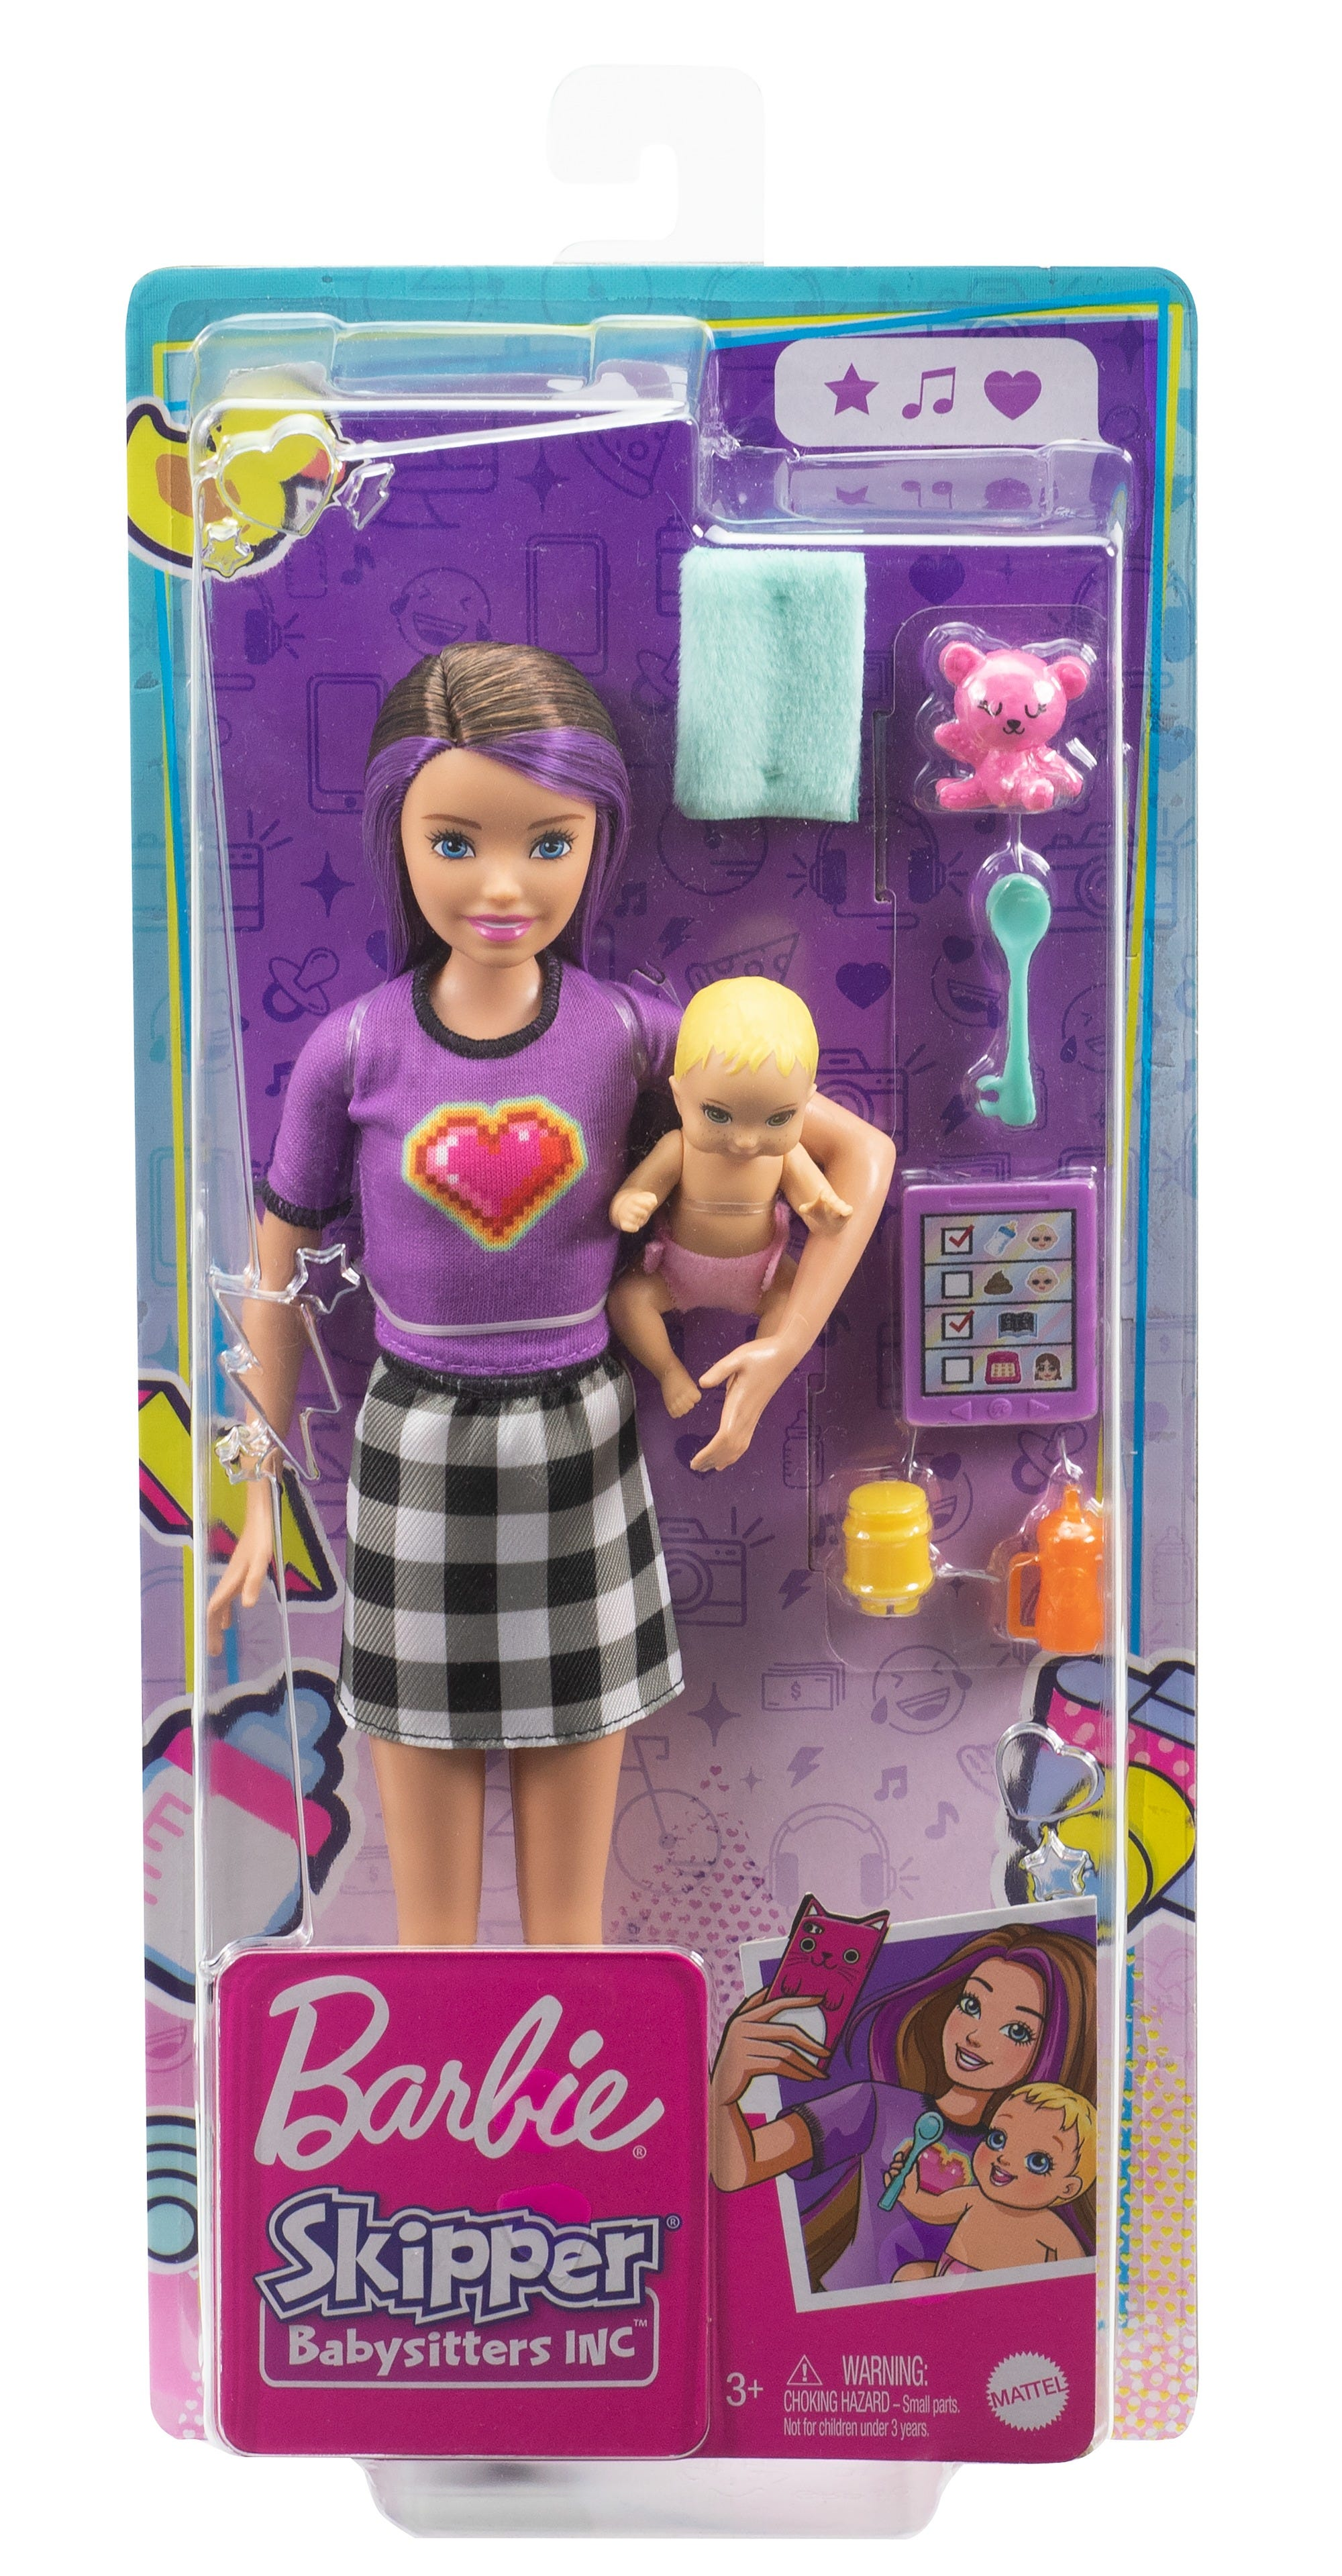 Barbie Babysitter Doll + Baby/Accy Assortment